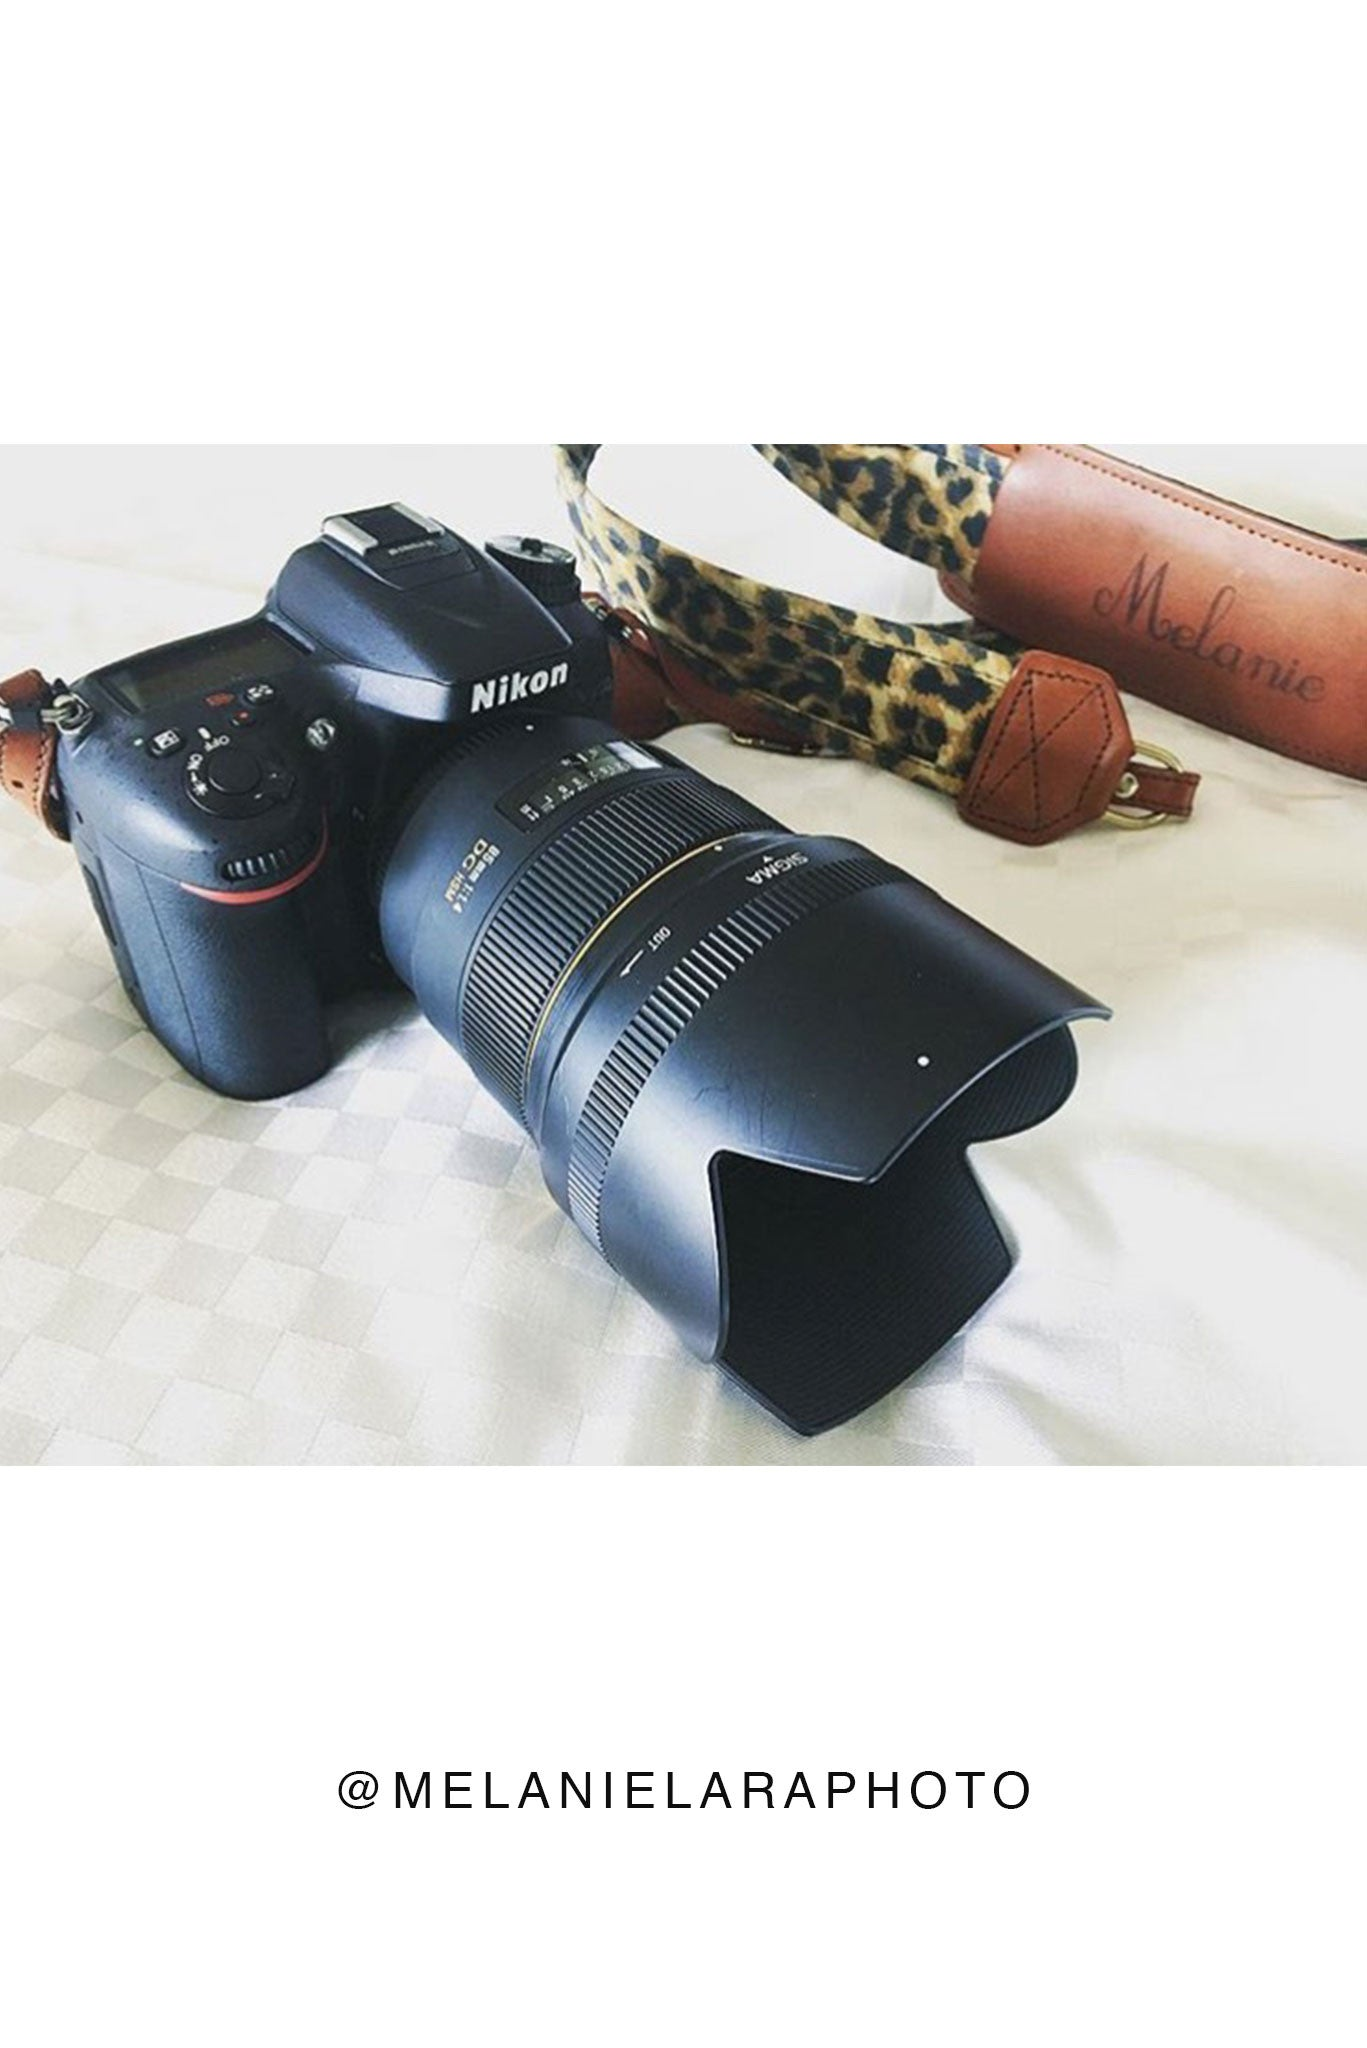 FOTO | Leopard Fotostrap - a leopard print canvas and genuine leather camera strap that can be personalized with a monogram or business logo, making it the perfect personalized gift!